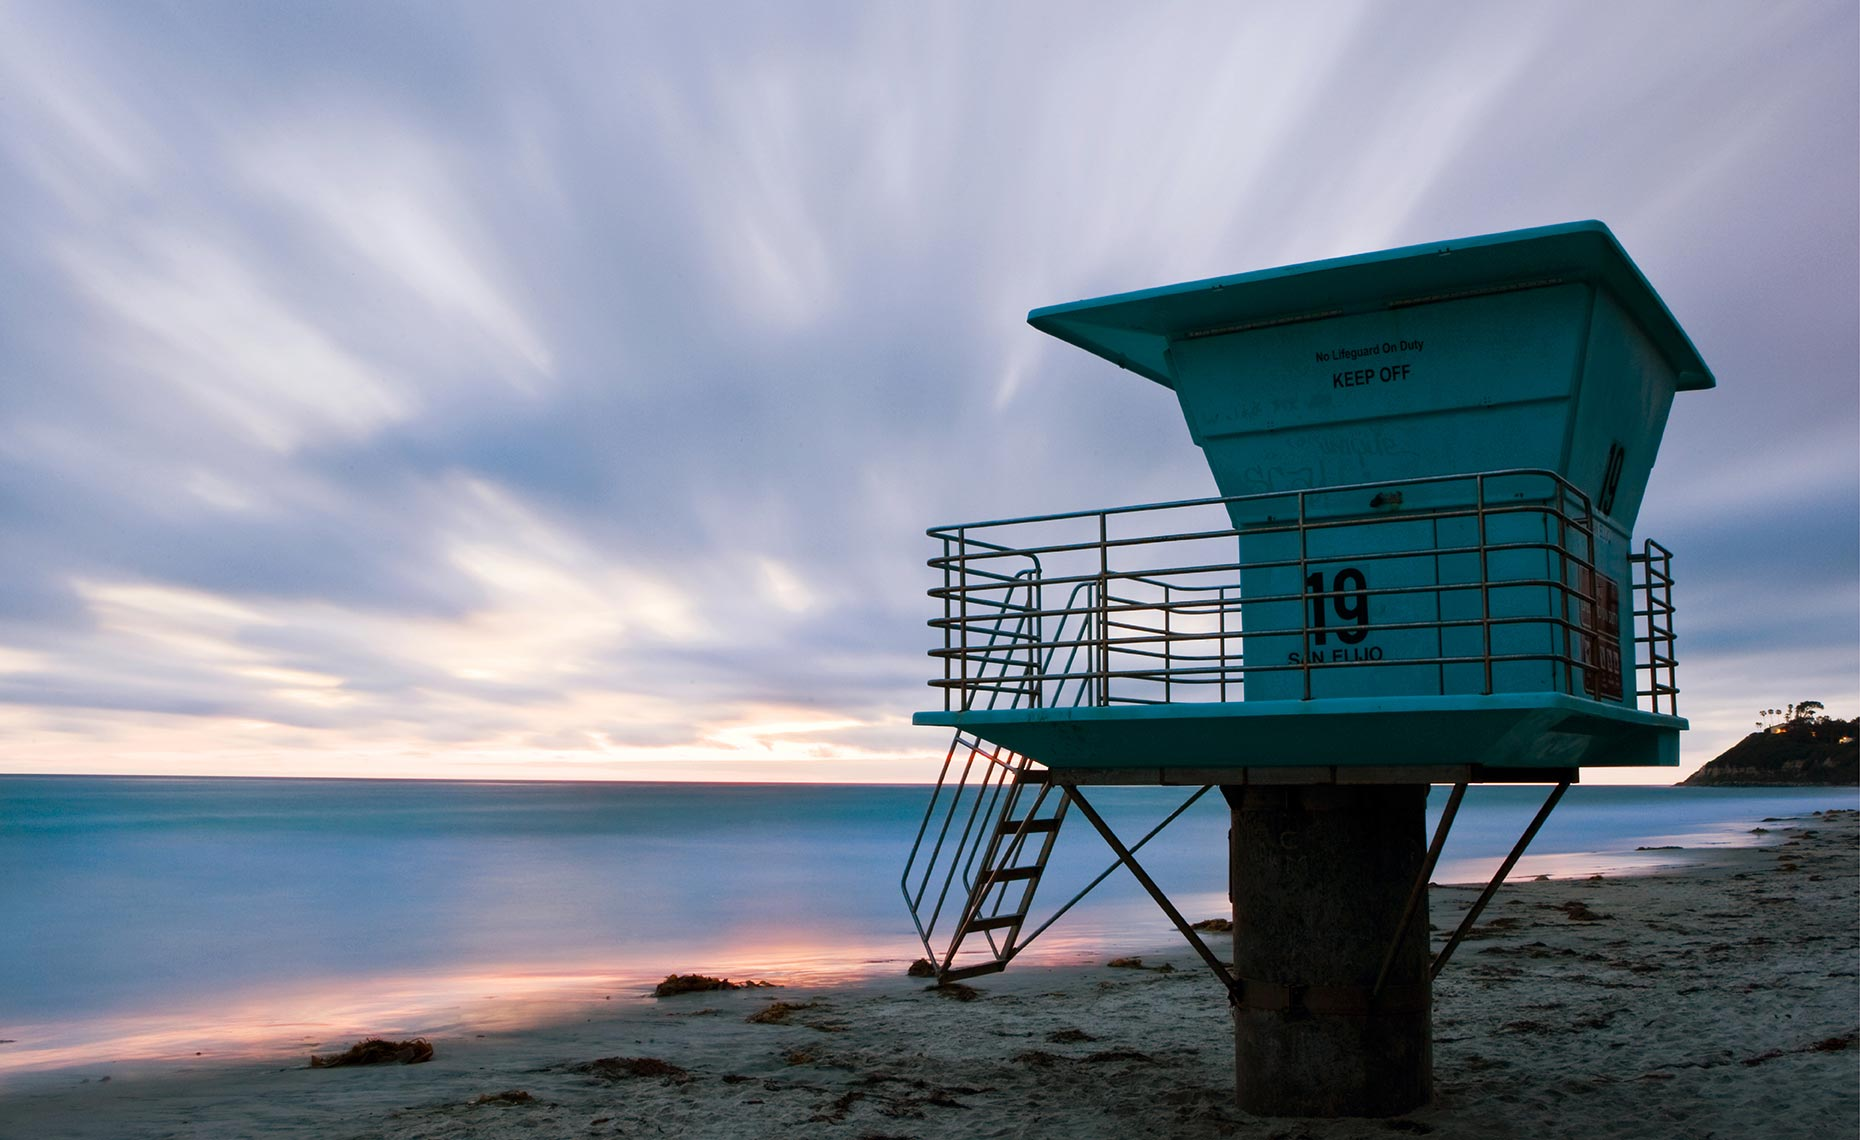 14_Cardiff_By_Beach_Sunset_Lifeguard_Tower_California_Environment_Landscape_Chris_Wellhausen_Photography.JPG